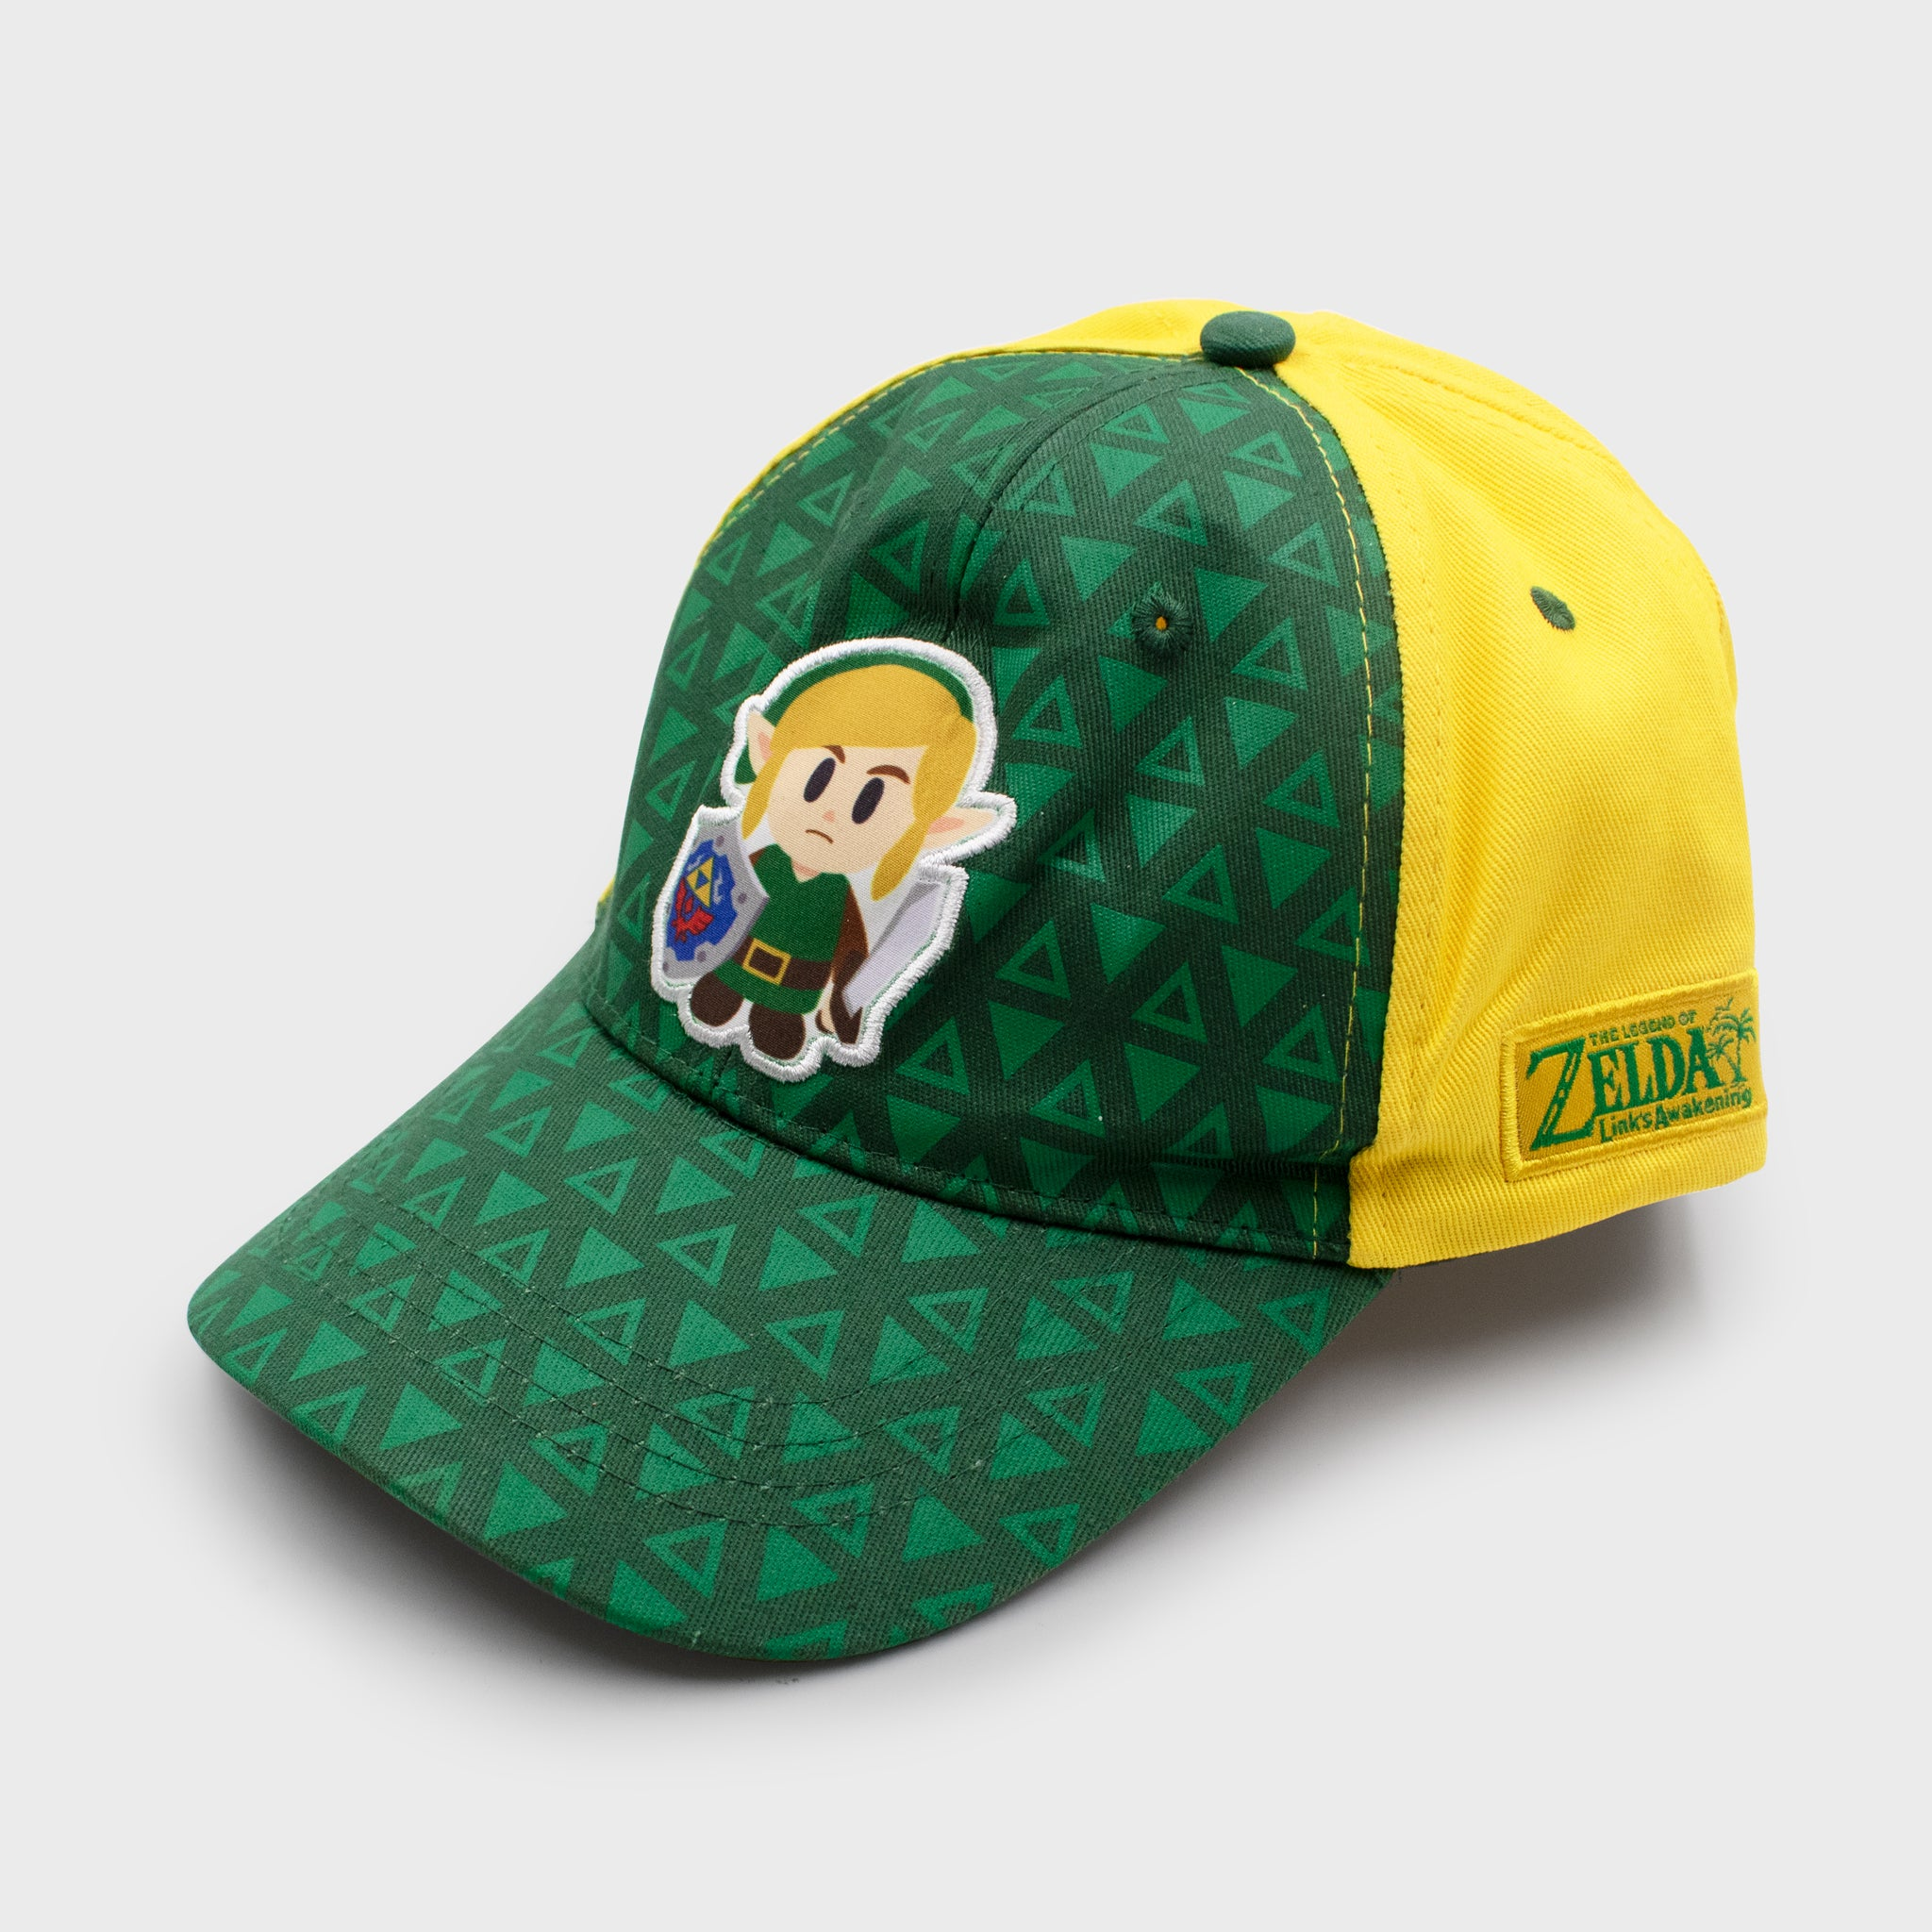 the legend of zelda link's awakening 2019 nintendo loz collector's box exclusive collectible fitted cap dad cap hat headwear culturefly